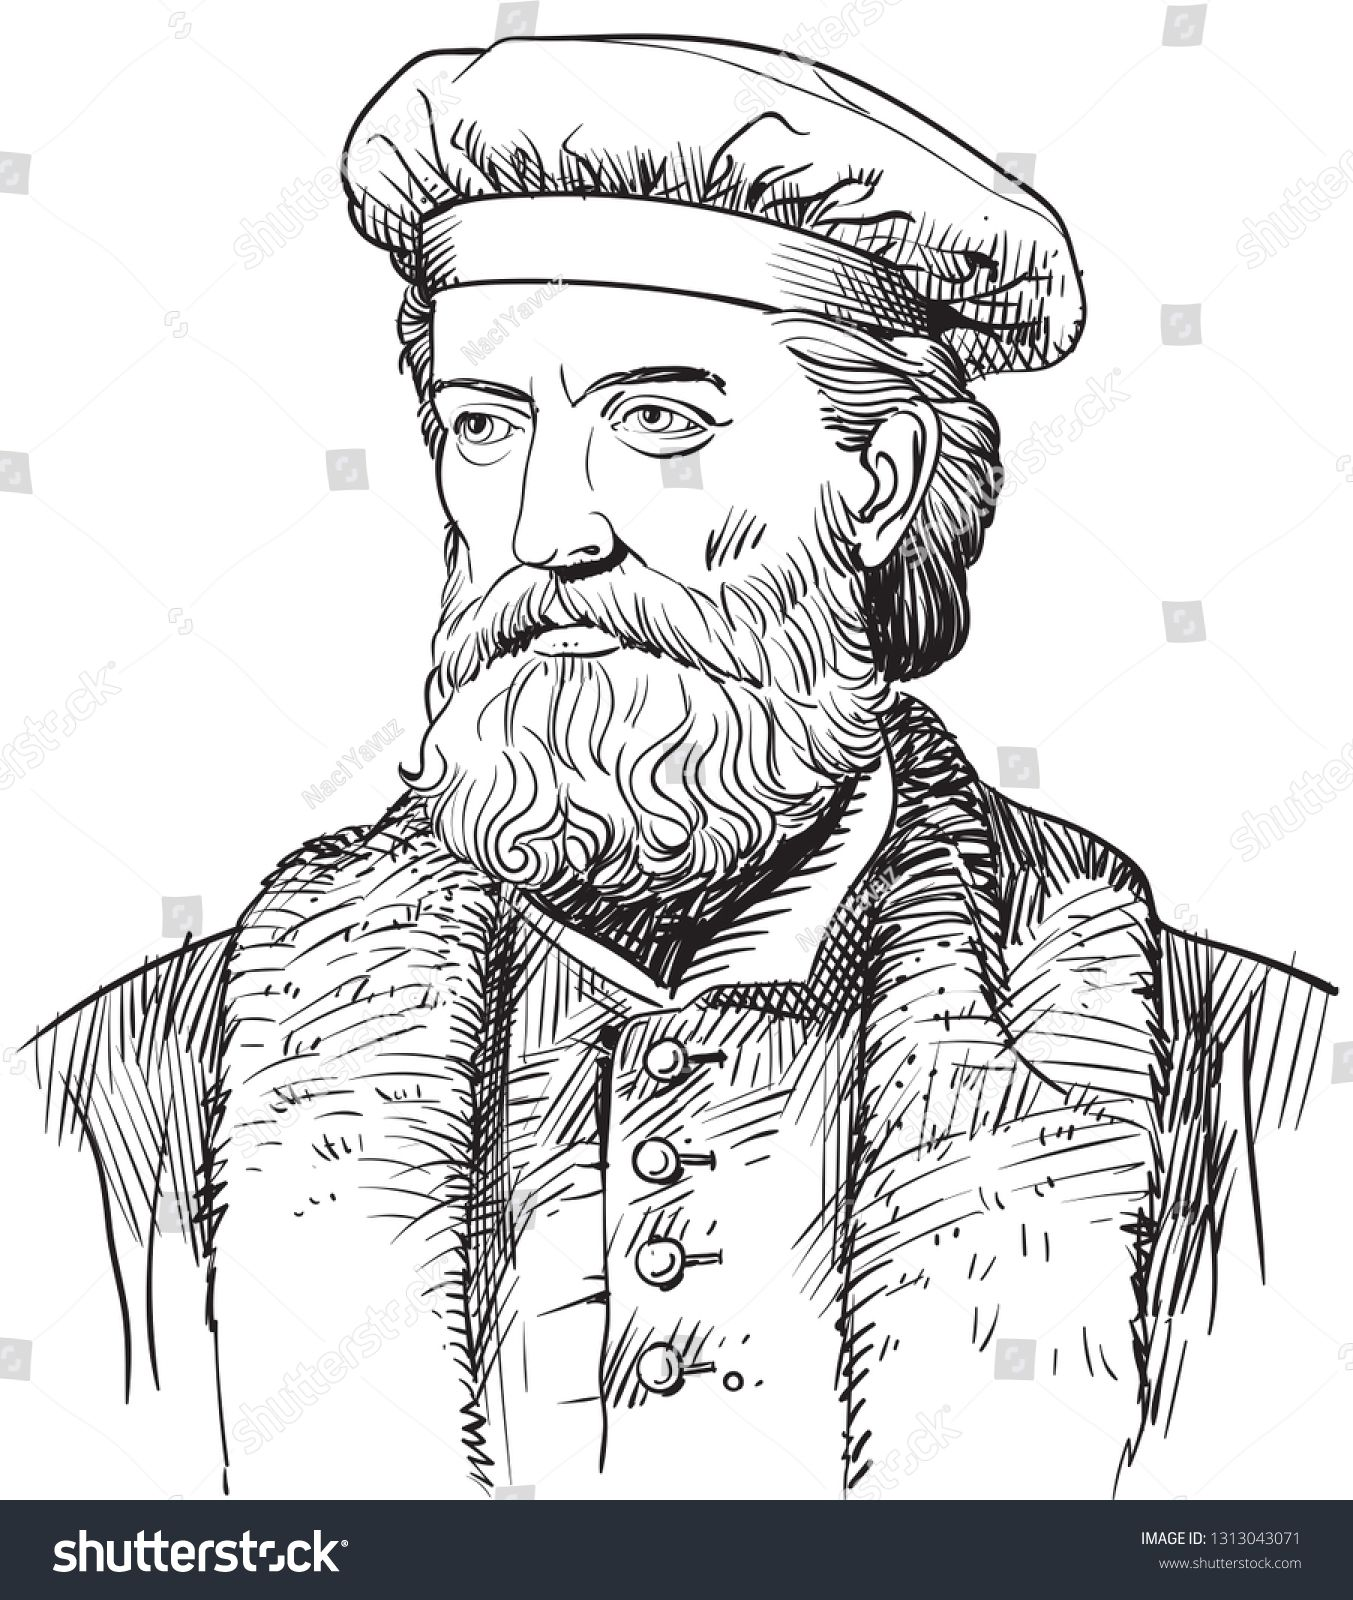 Marco Polo 1254 1324 Portrait In Line Art Illustration He Was